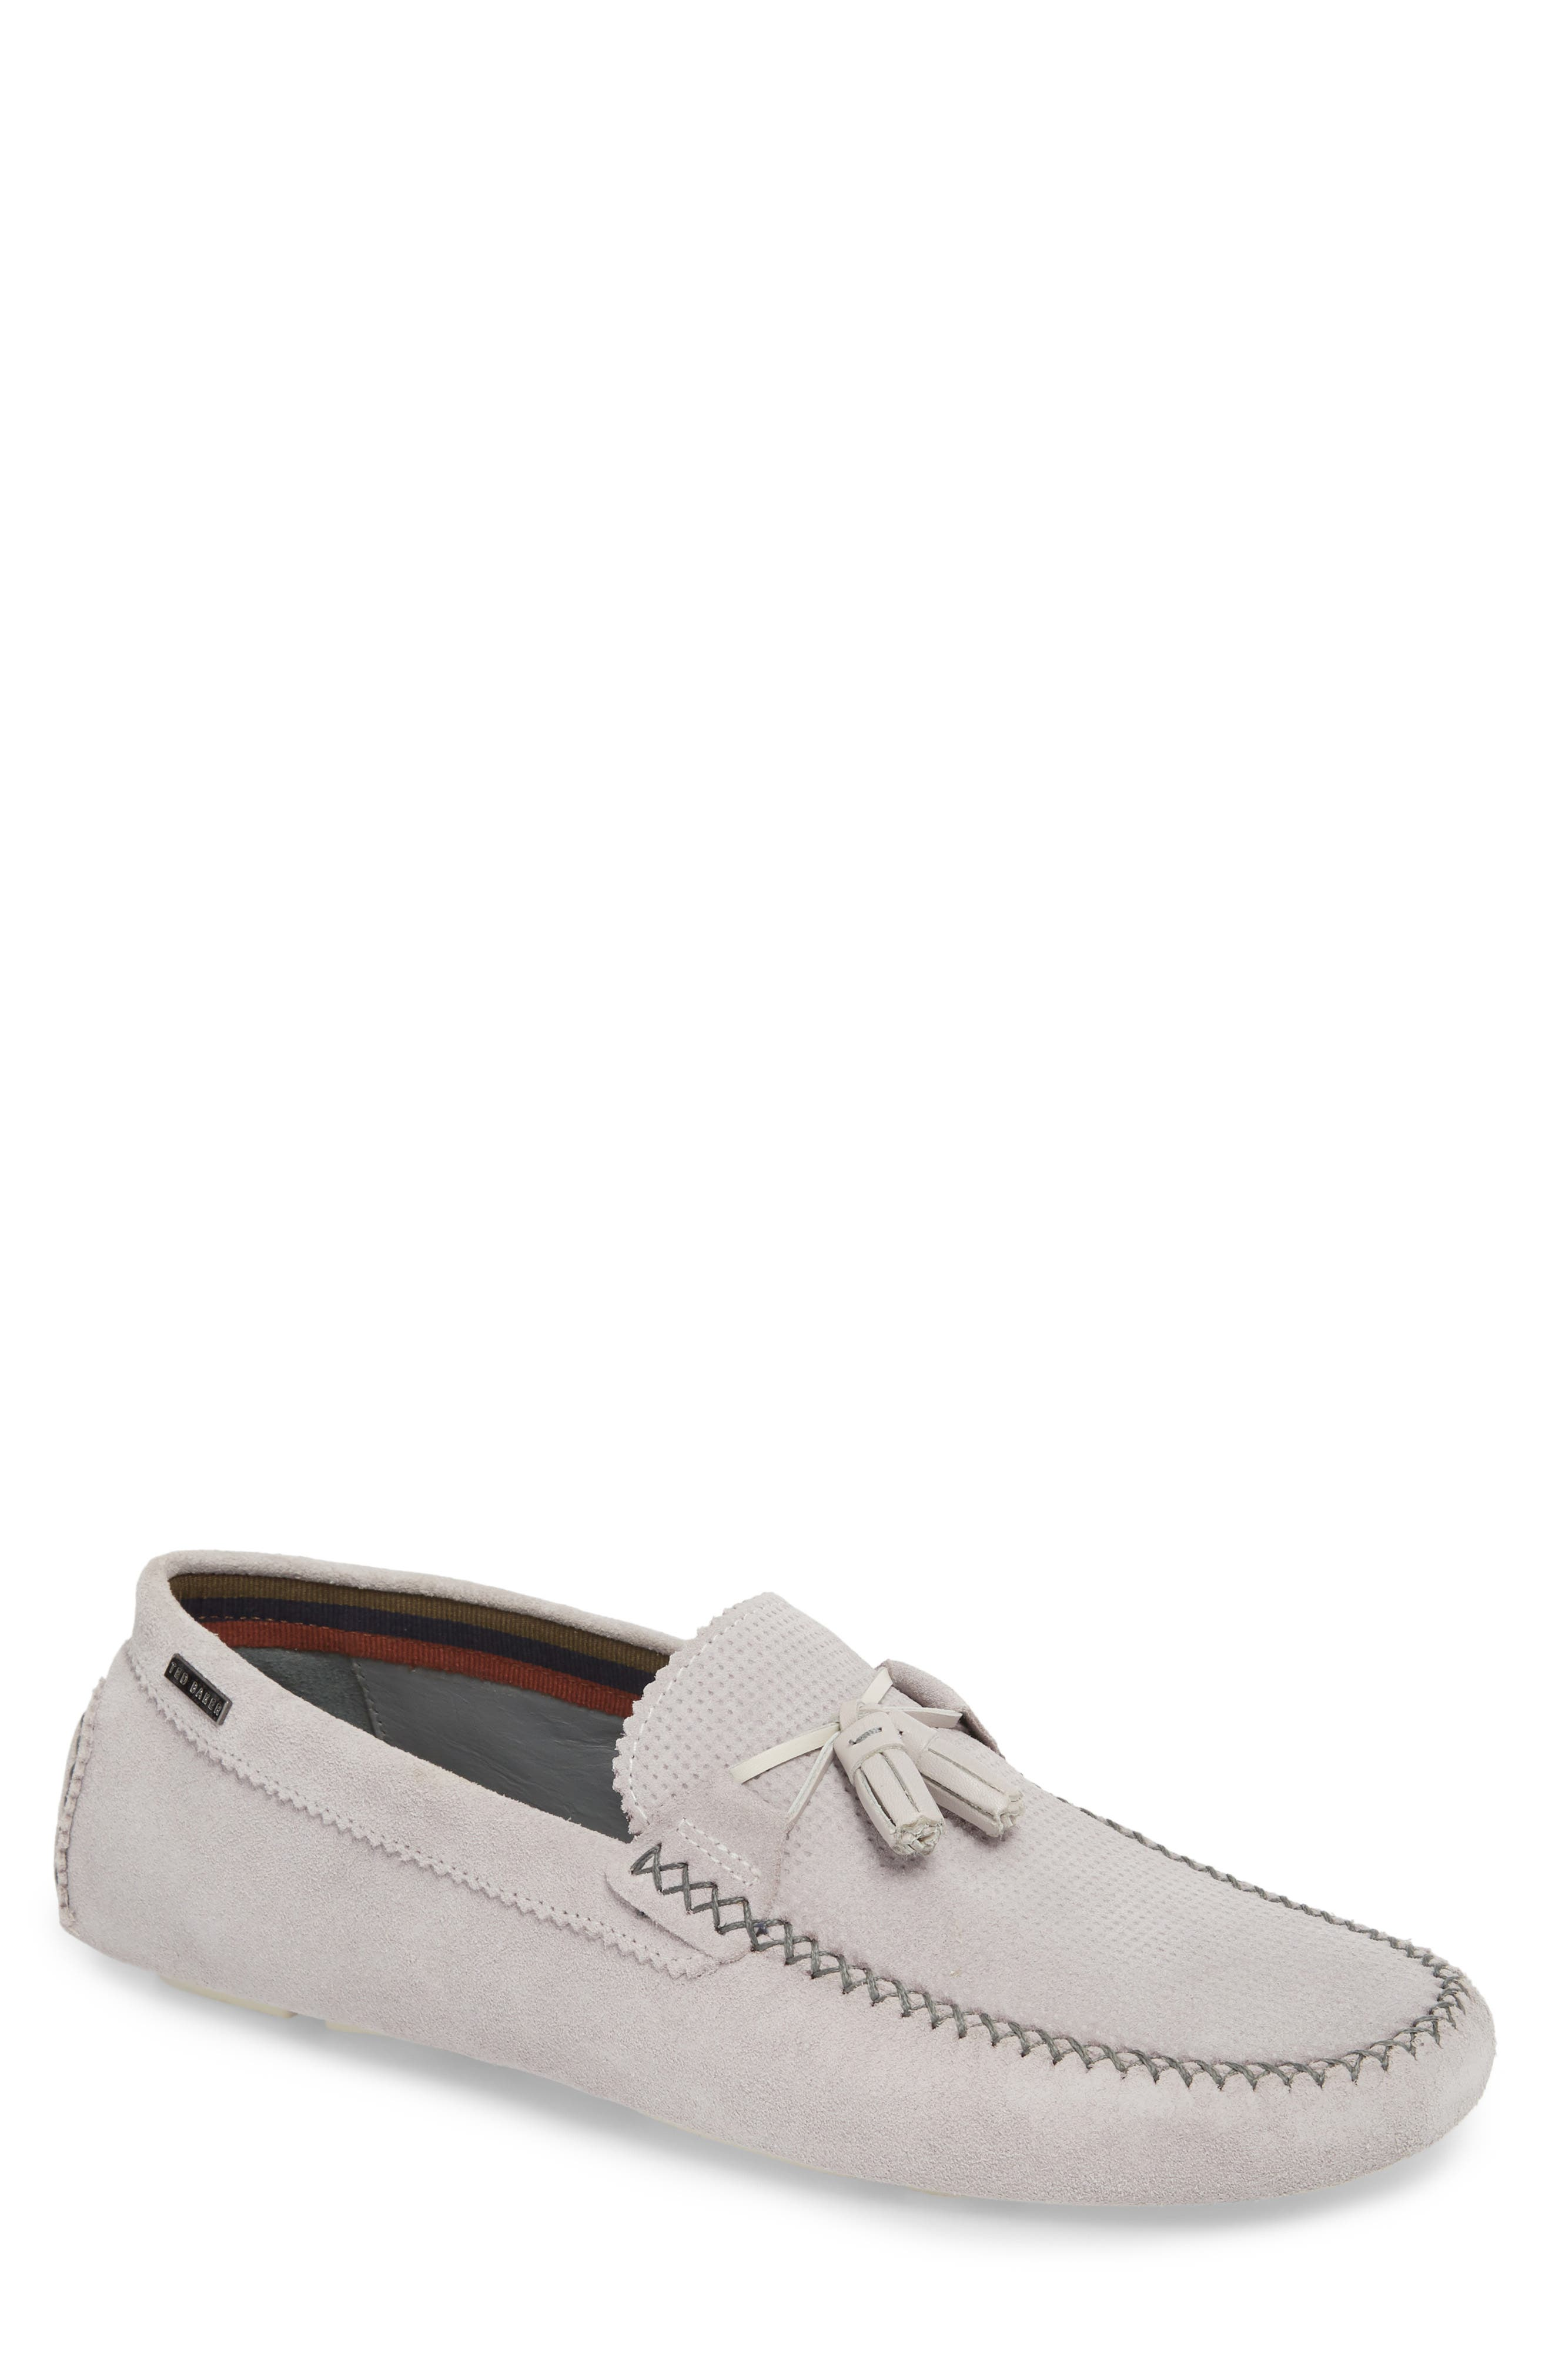 Erbonn Tasseled Driving Moccasin,                             Main thumbnail 1, color,                             LIGHT GREY SUEDE